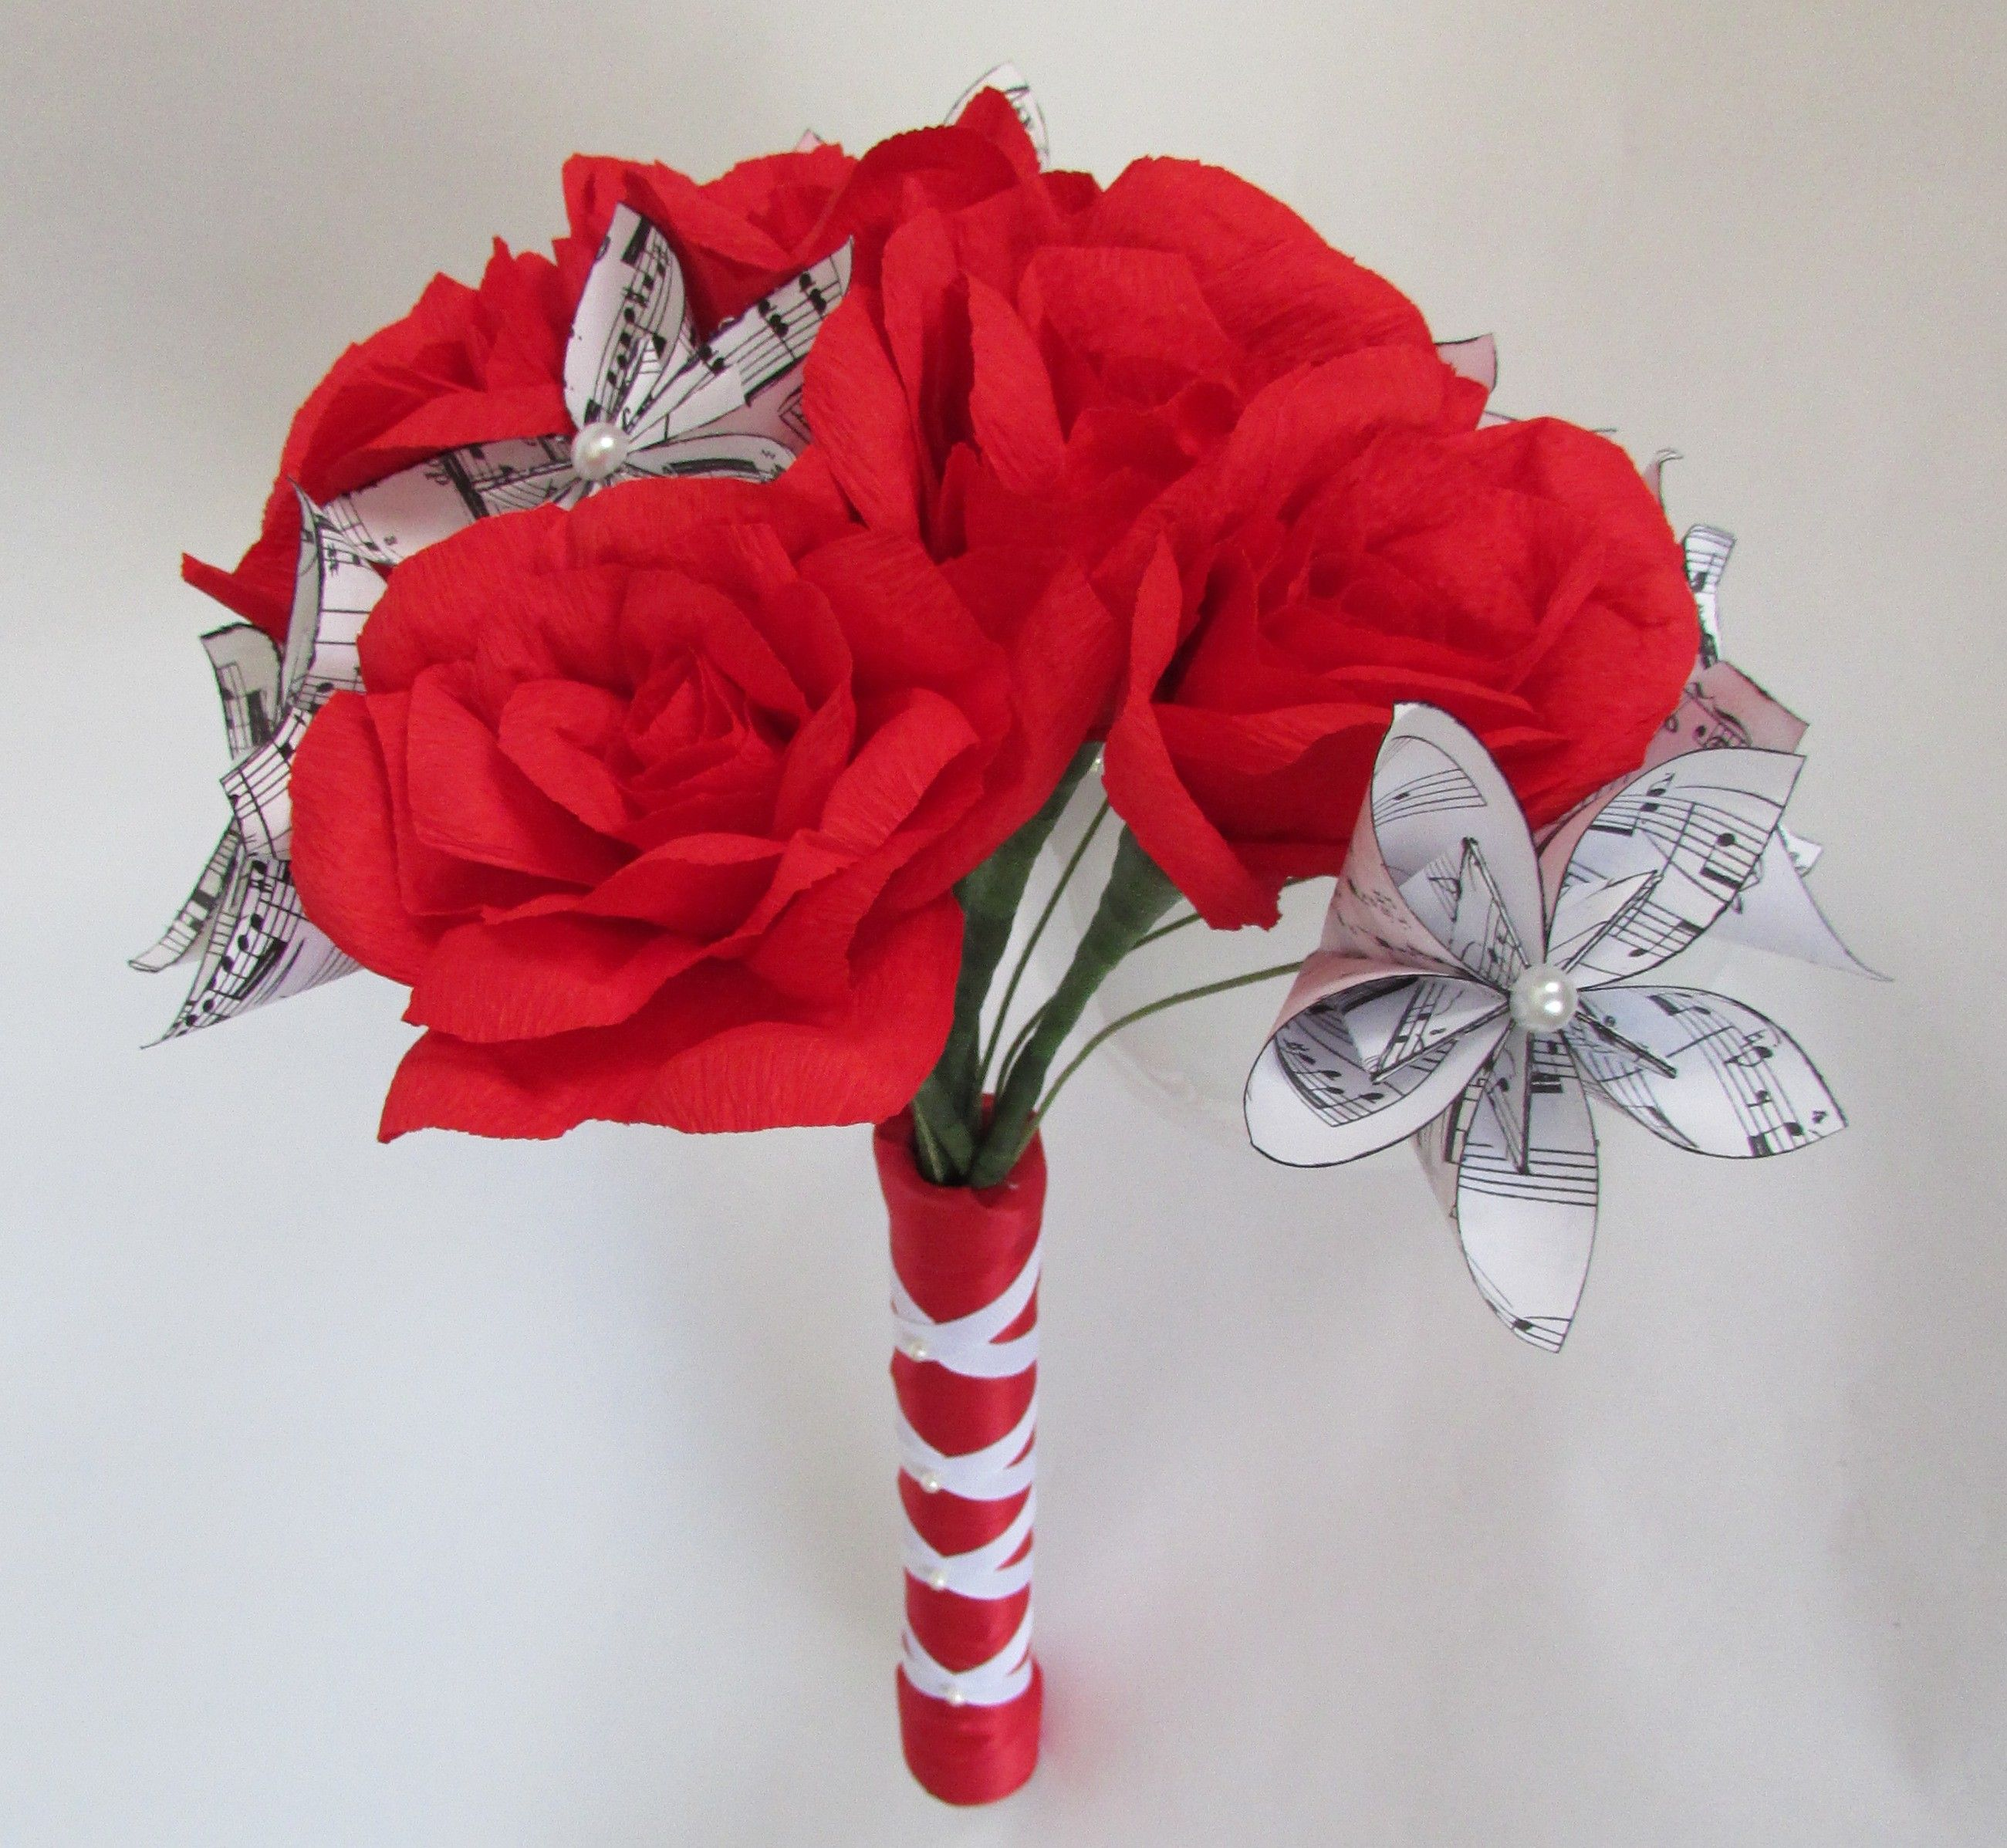 Sheet music red roses bouquet paper flower bouquet paper bouquet sheet music red roses bouquet paper flower bouquet paper bouquet rose bouquet izmirmasajfo